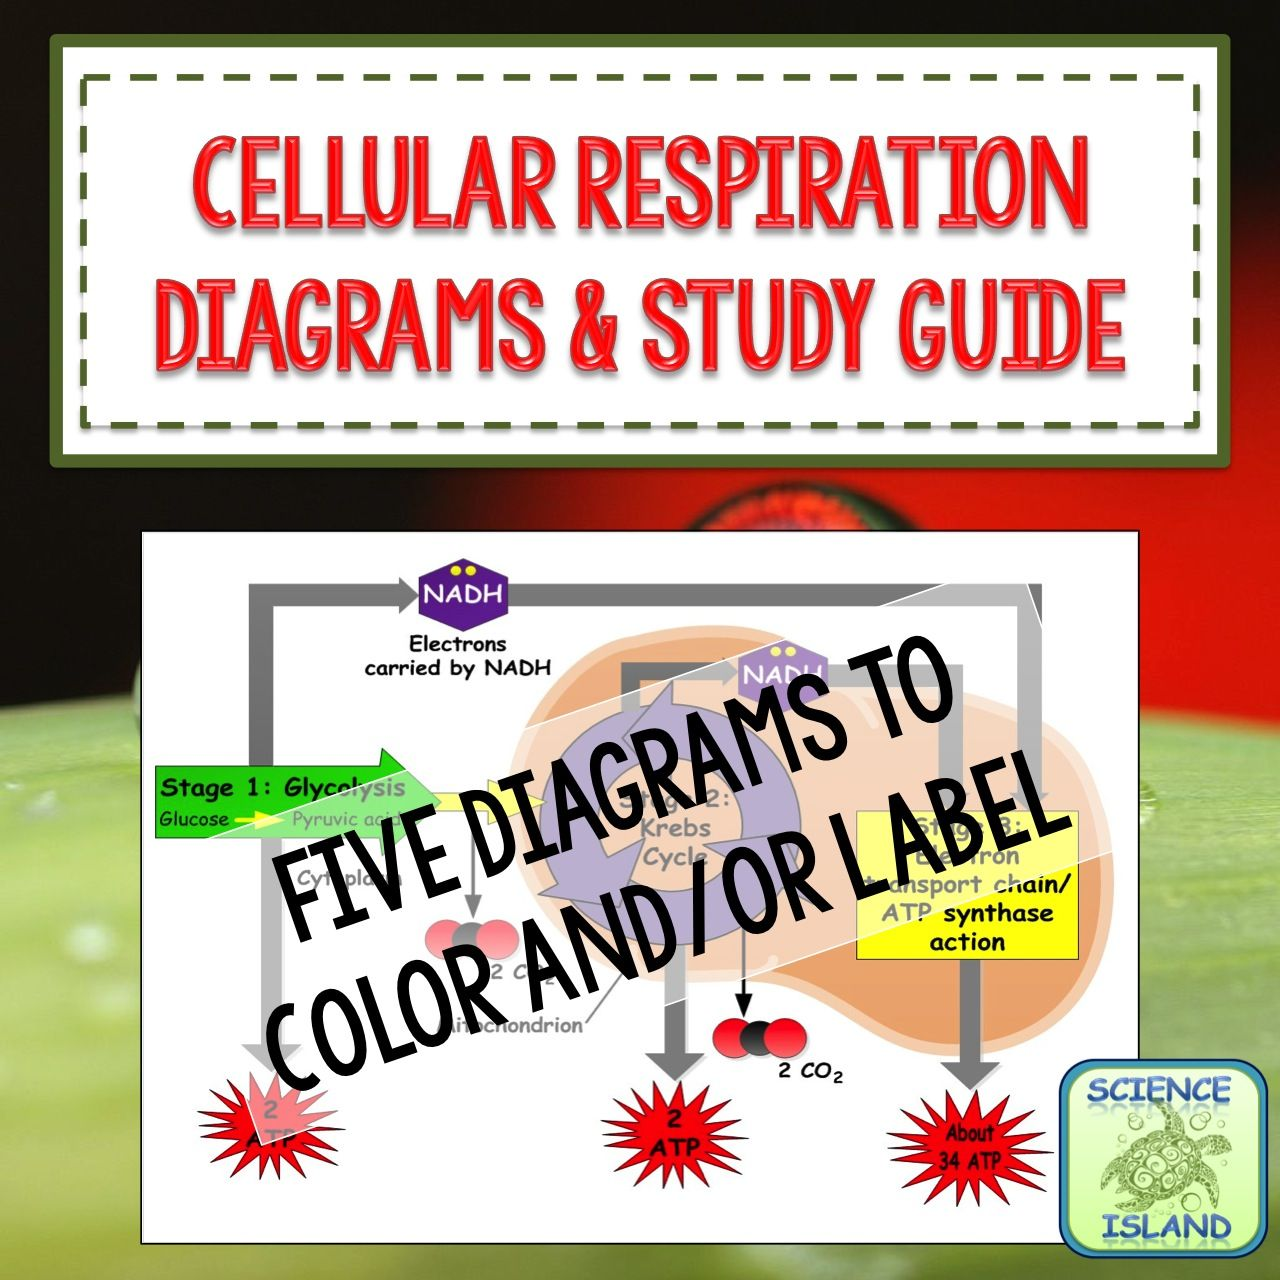 Cellular respiration diagrams and study guide teaching biology cellular respiration diagrams and study guide pooptronica